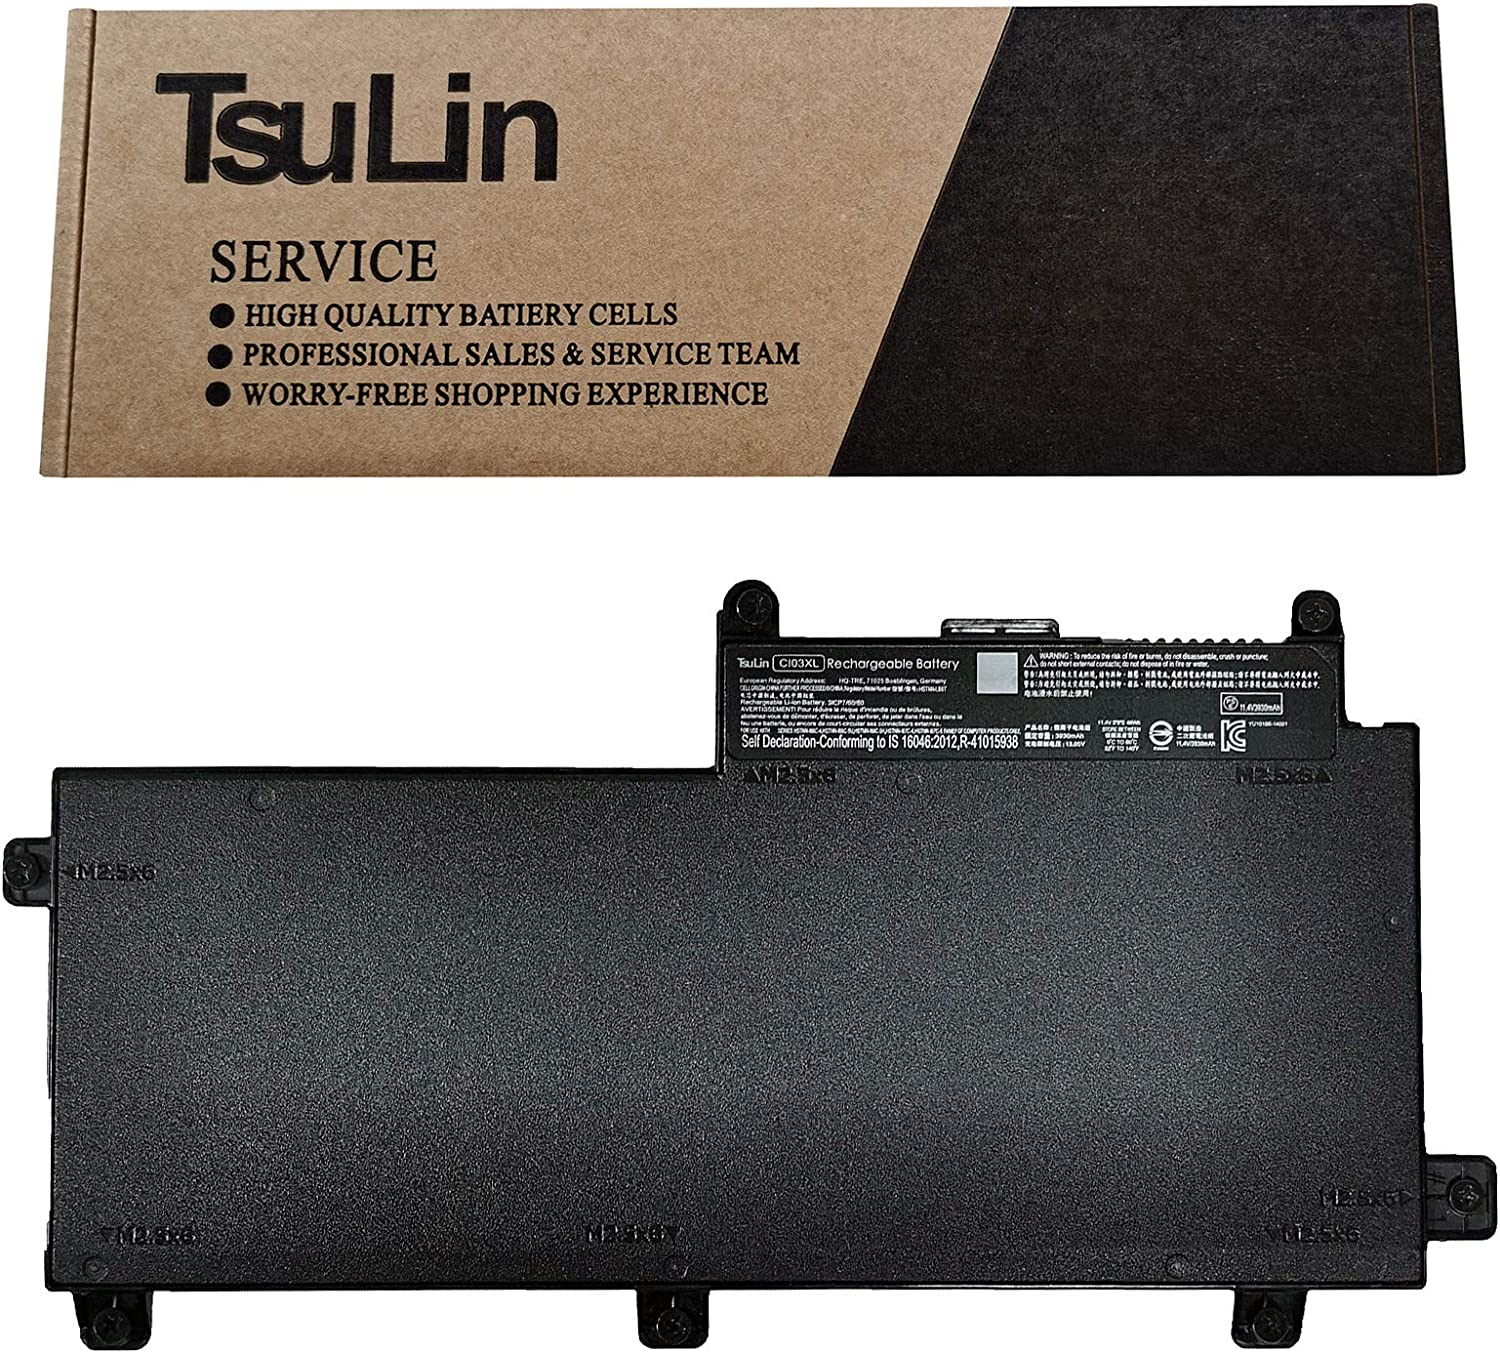 TsuLin CI03XL Laptop Battery Compatible with HP ProBook 640/645/ 650/655 G2 Series Notebook HSTNN-LB6T CI03 CIO3 CIO3XL HSTNN-UB6Q 801554-001 11.4V 48Wh 3930mAh